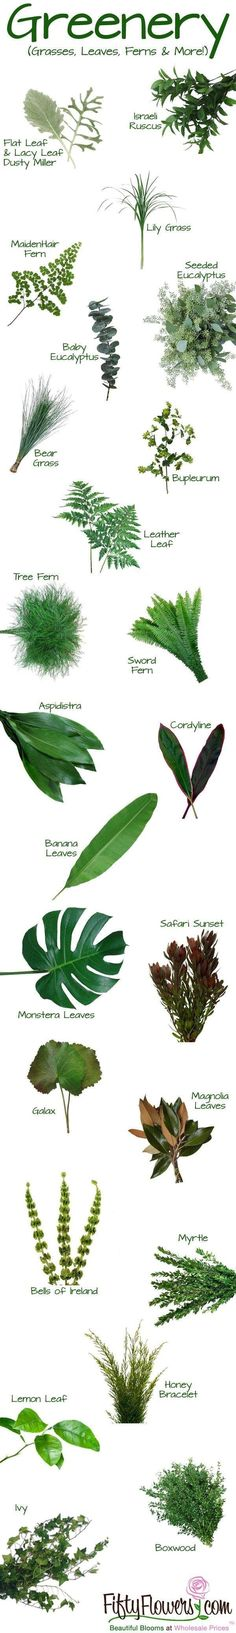 Greenery and fillers - types of ferns leaves etc for bouquet filler